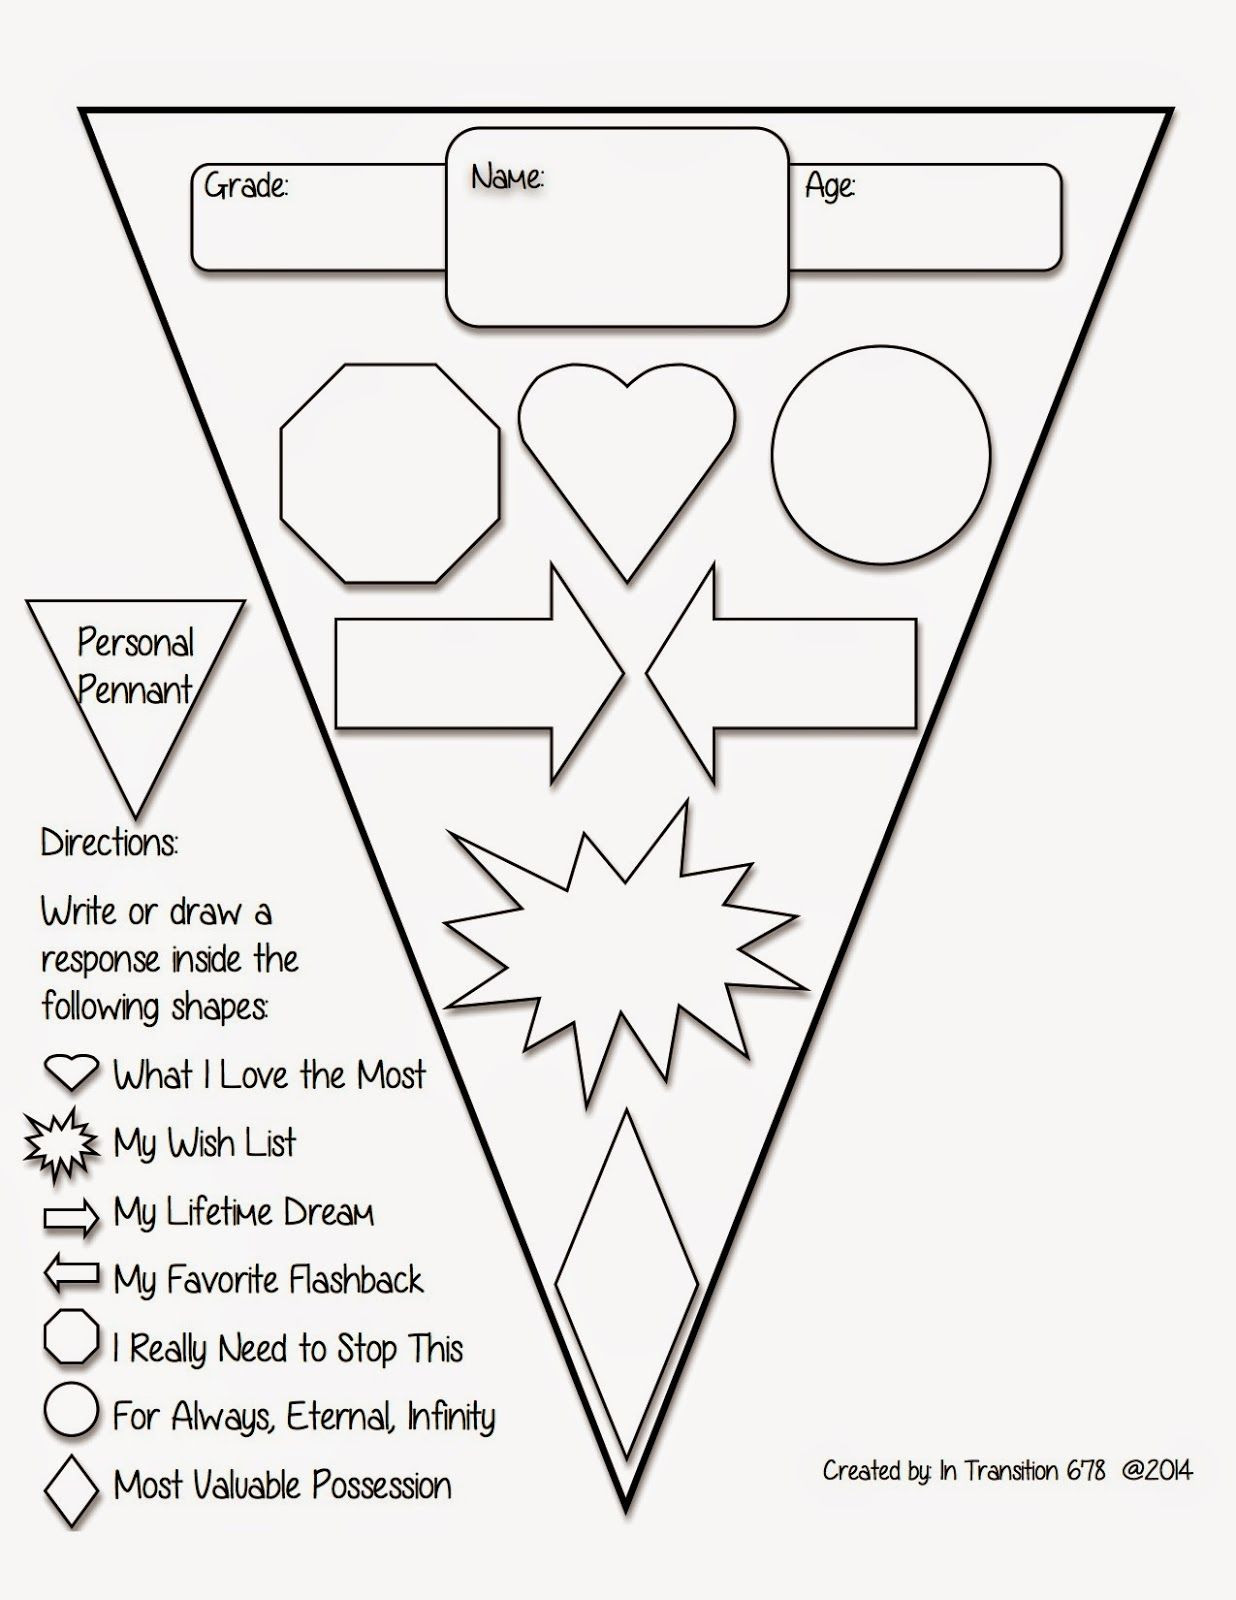 3d Shapes Worksheets 2nd Grade Generationinitiative Page 40 3d Shapes Practice Worksheets